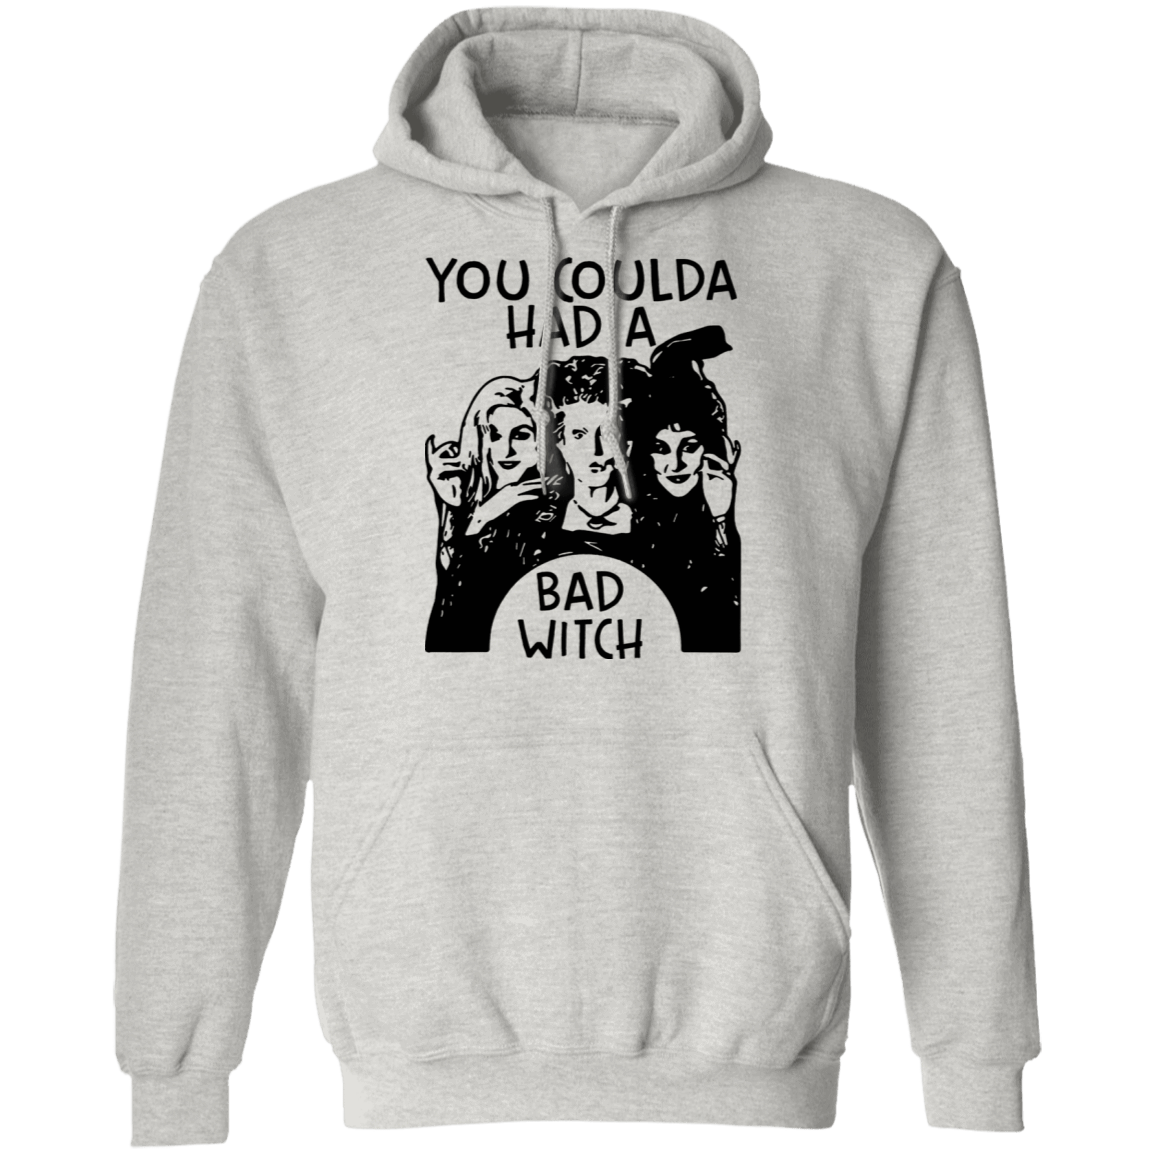 Hocus Pocus You Coulda Had A Bad Witch T-Shirts, Hoodies, Tank 541-4748-79820344-23071 - Tee Ript